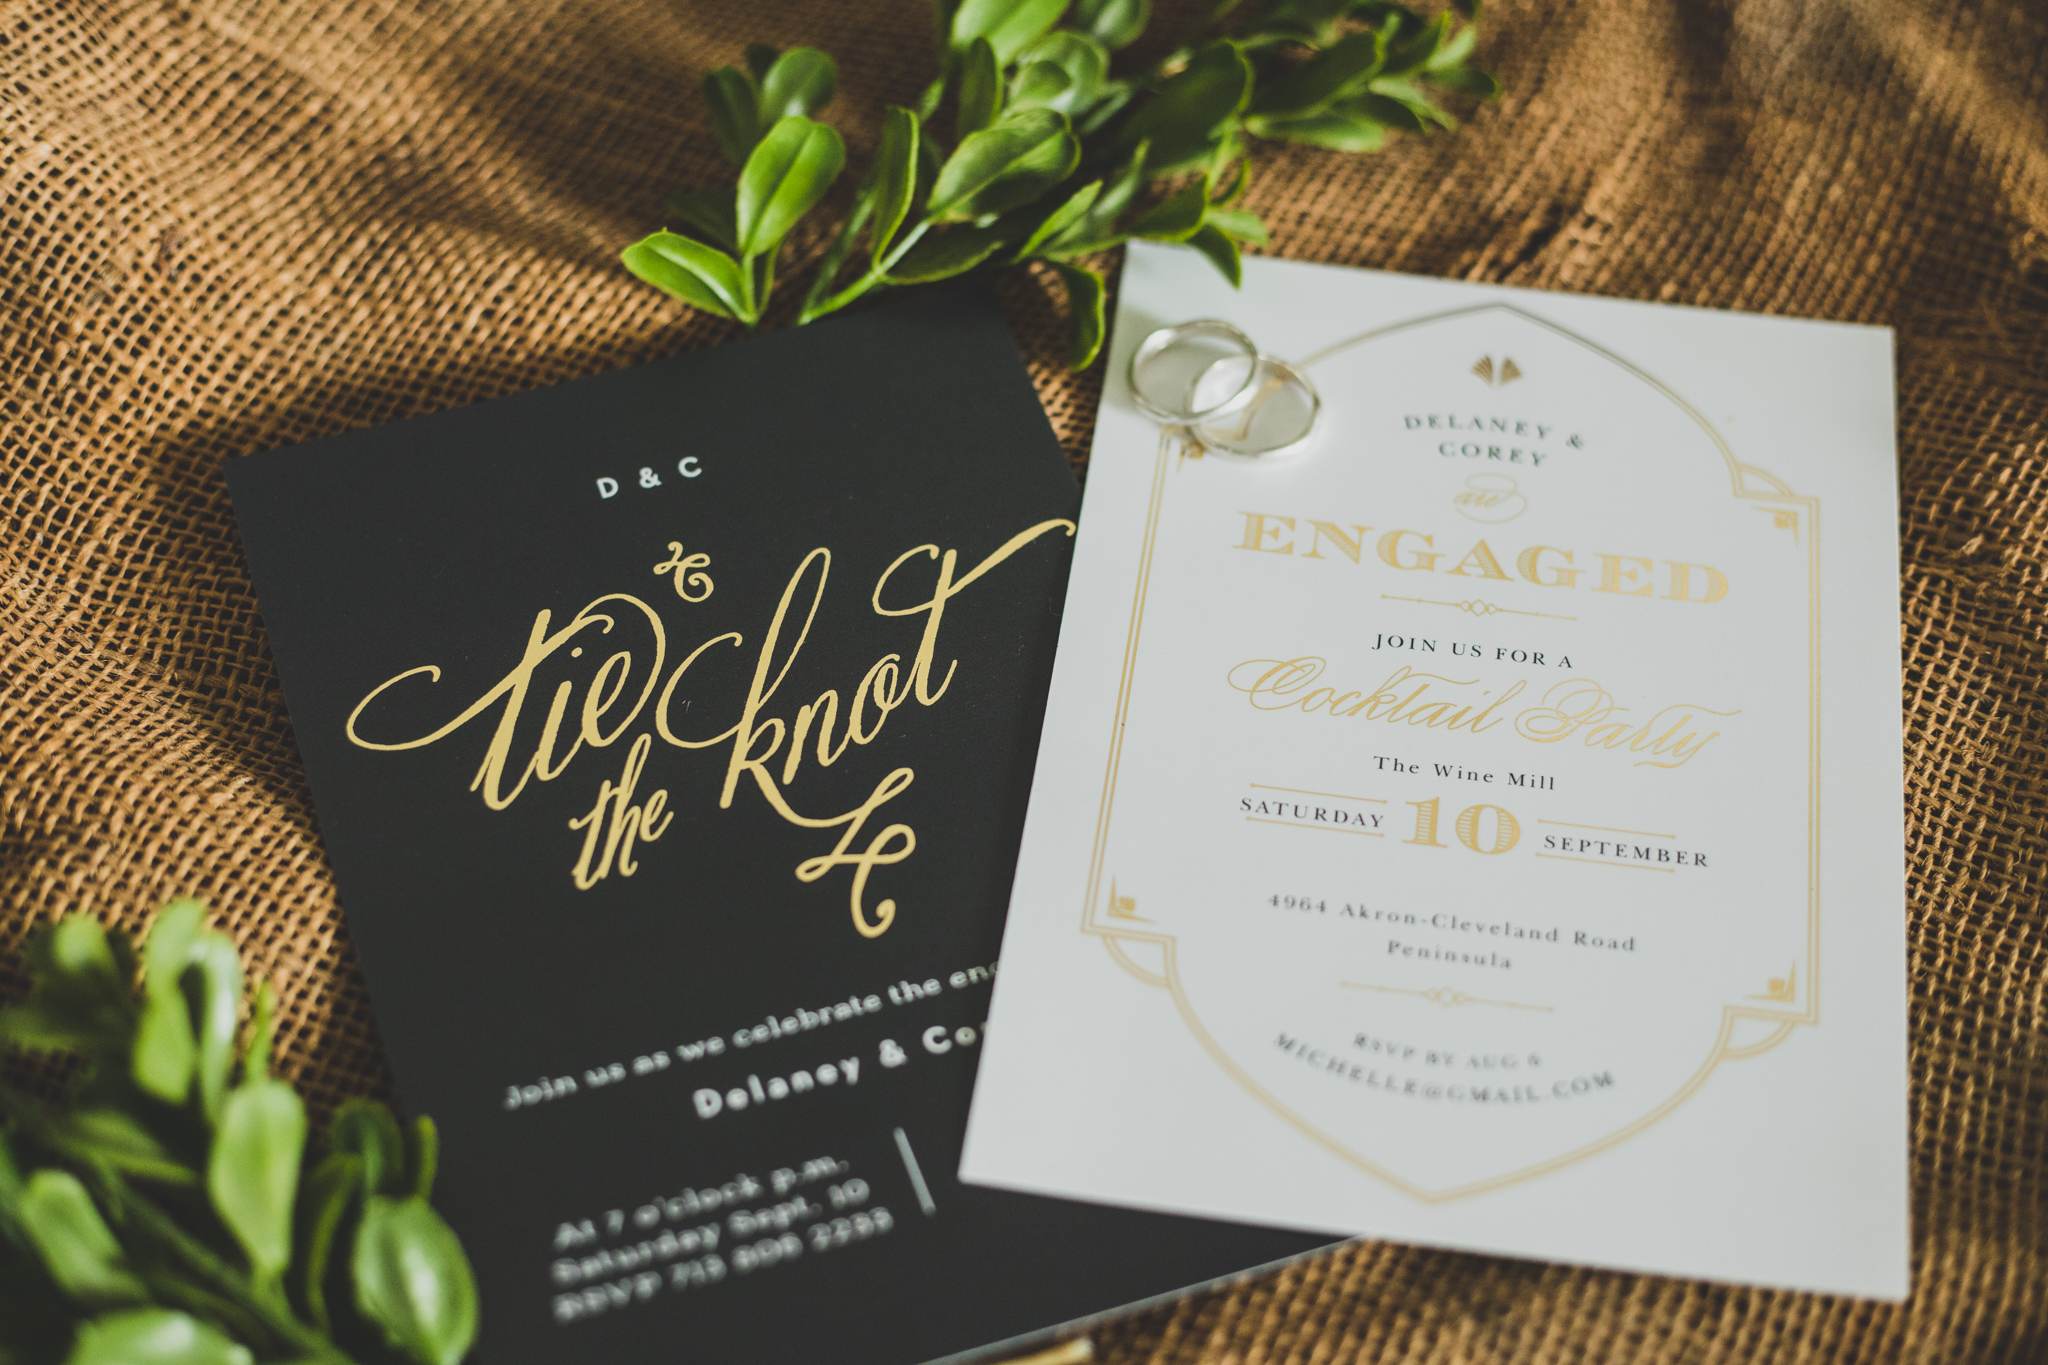 Basic Invite-Engagement Party Invitations-Michelle Carter Photography-17.jpg